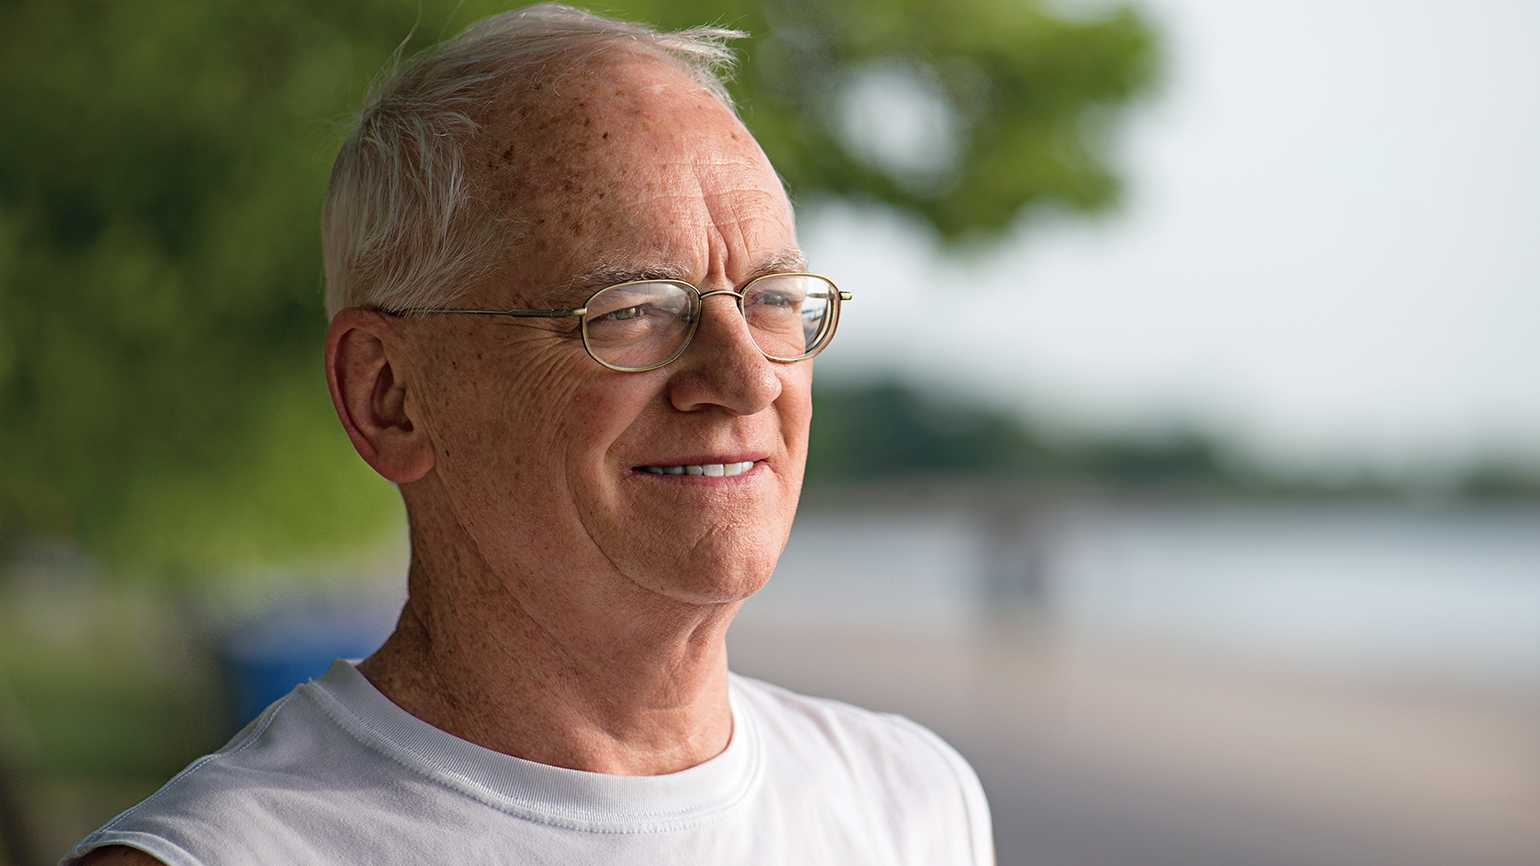 Dennis McNicholas discovered a side to his personality that he didn't know he had